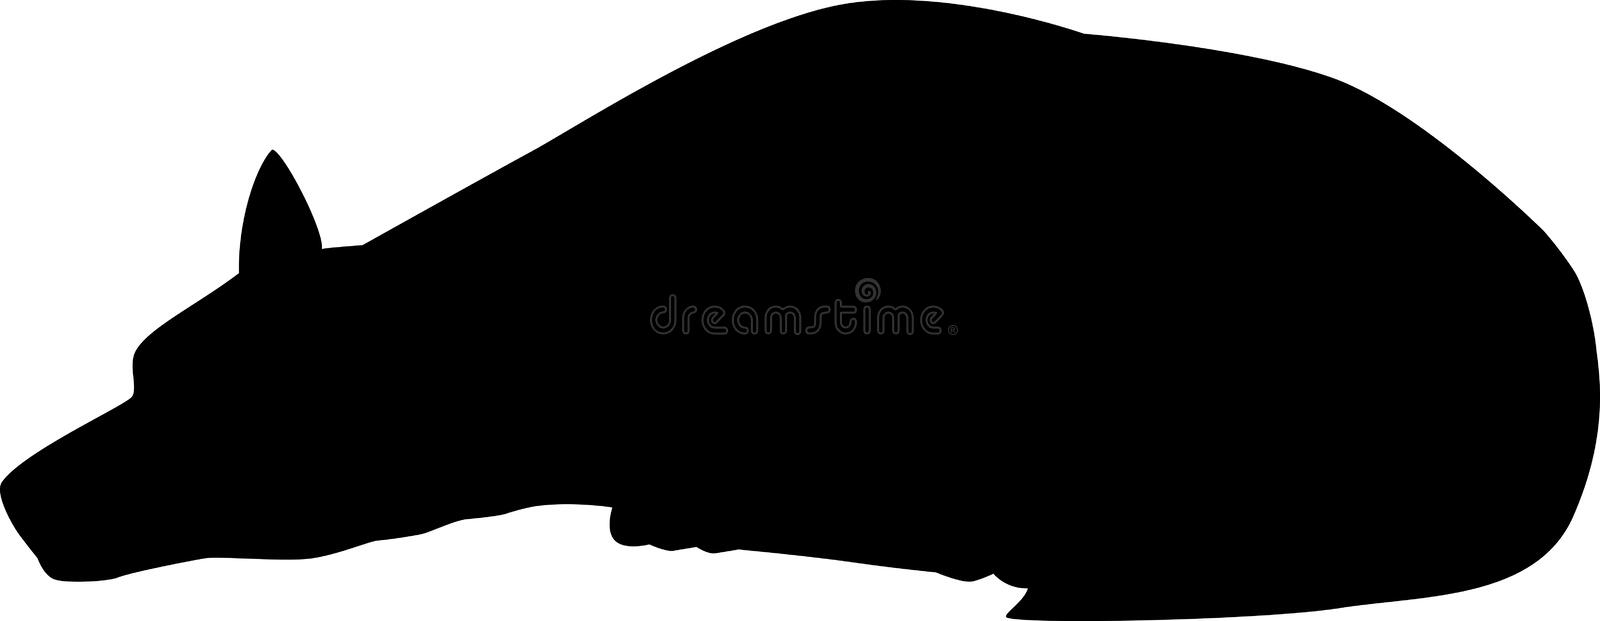 Silhouette of lonely dog royalty free illustration